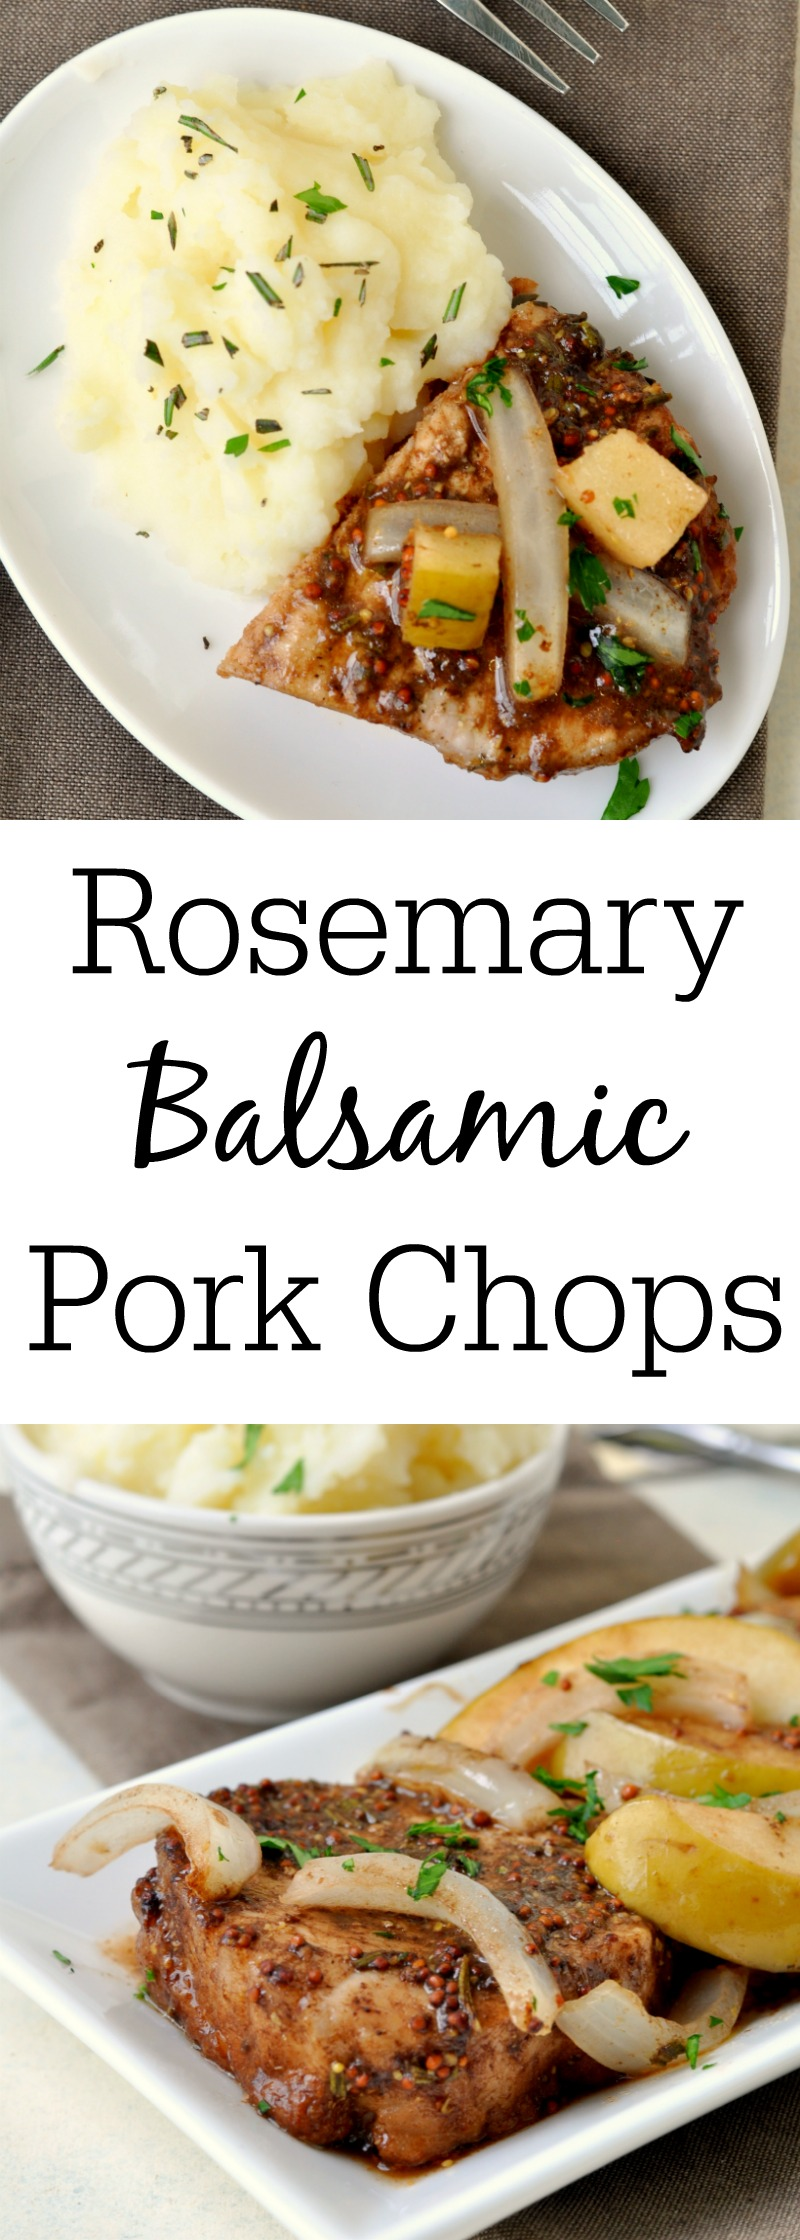 pork chops pork chops peking pork chops baked pork chops i rosemary ...